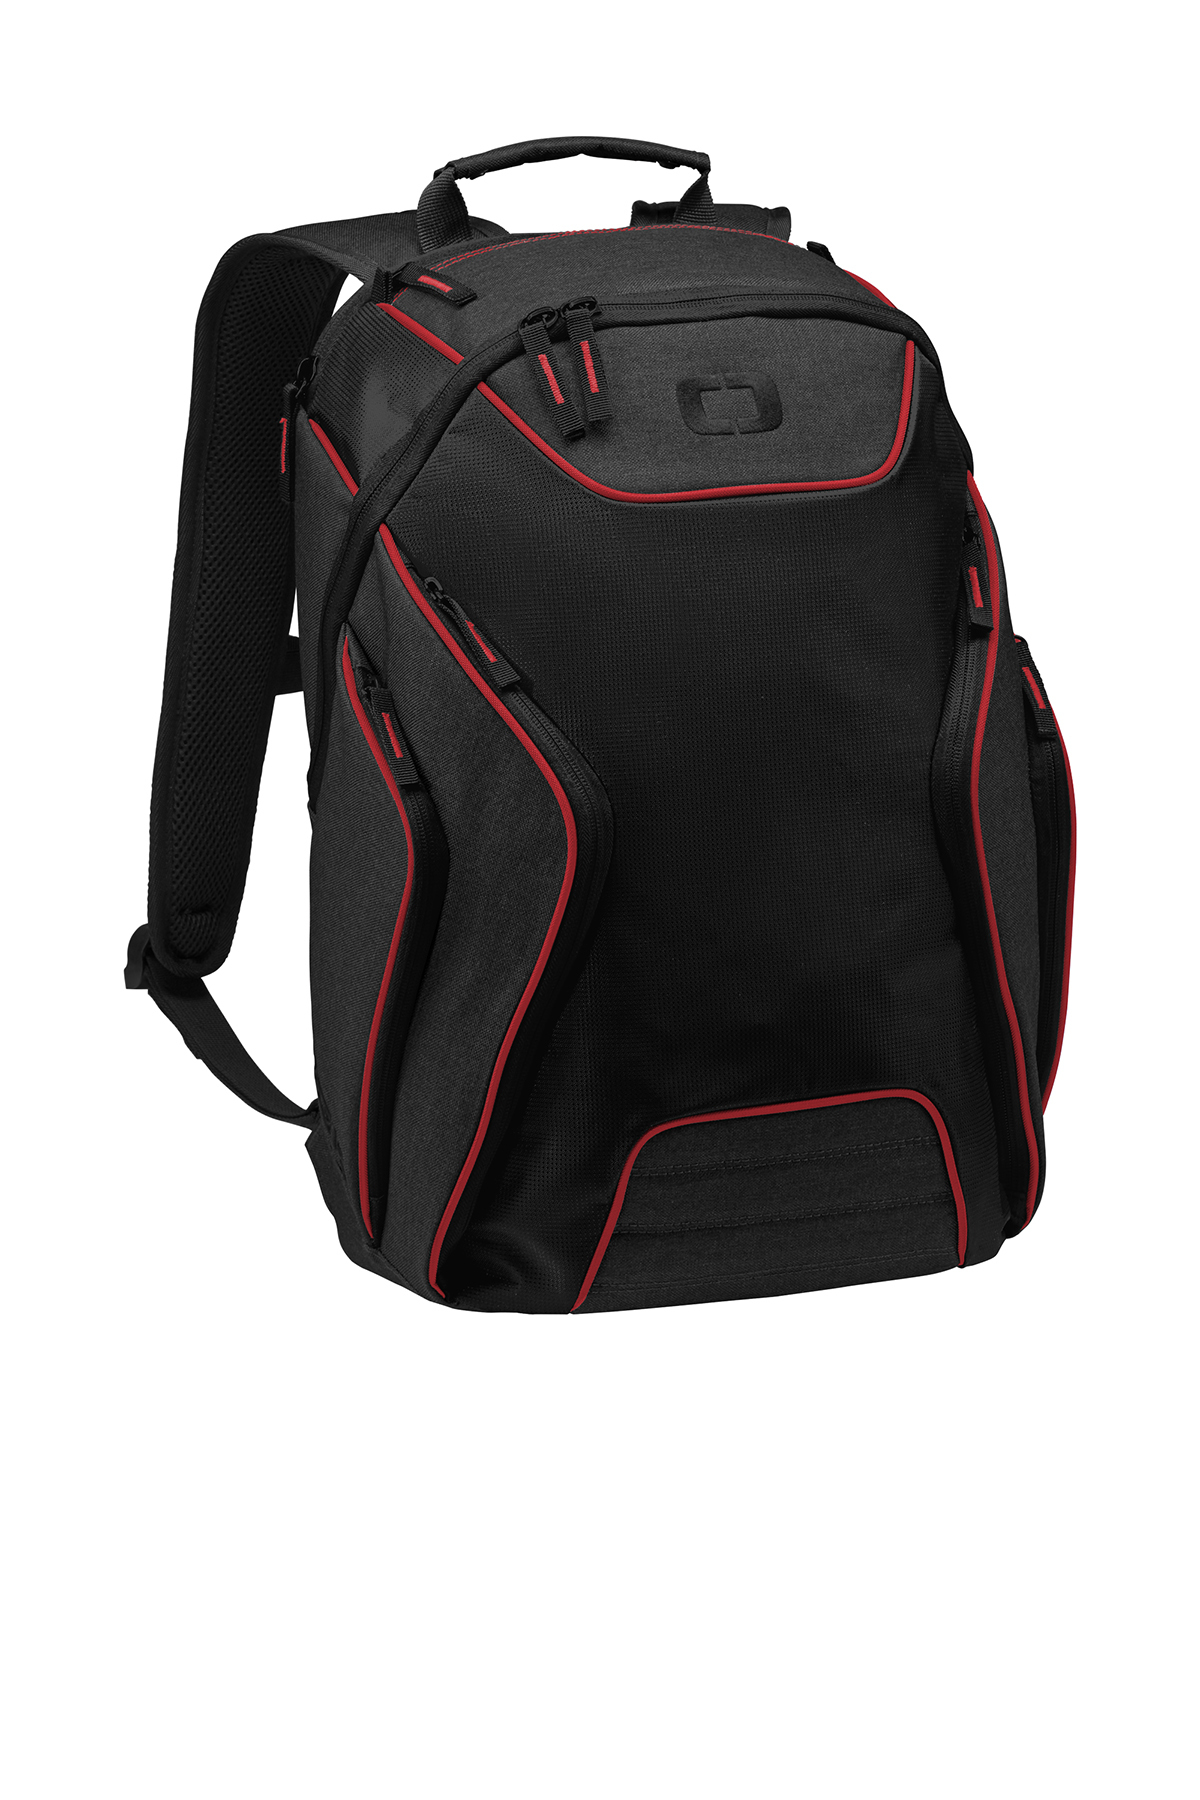 OGIO 91001 - Hatch Pack